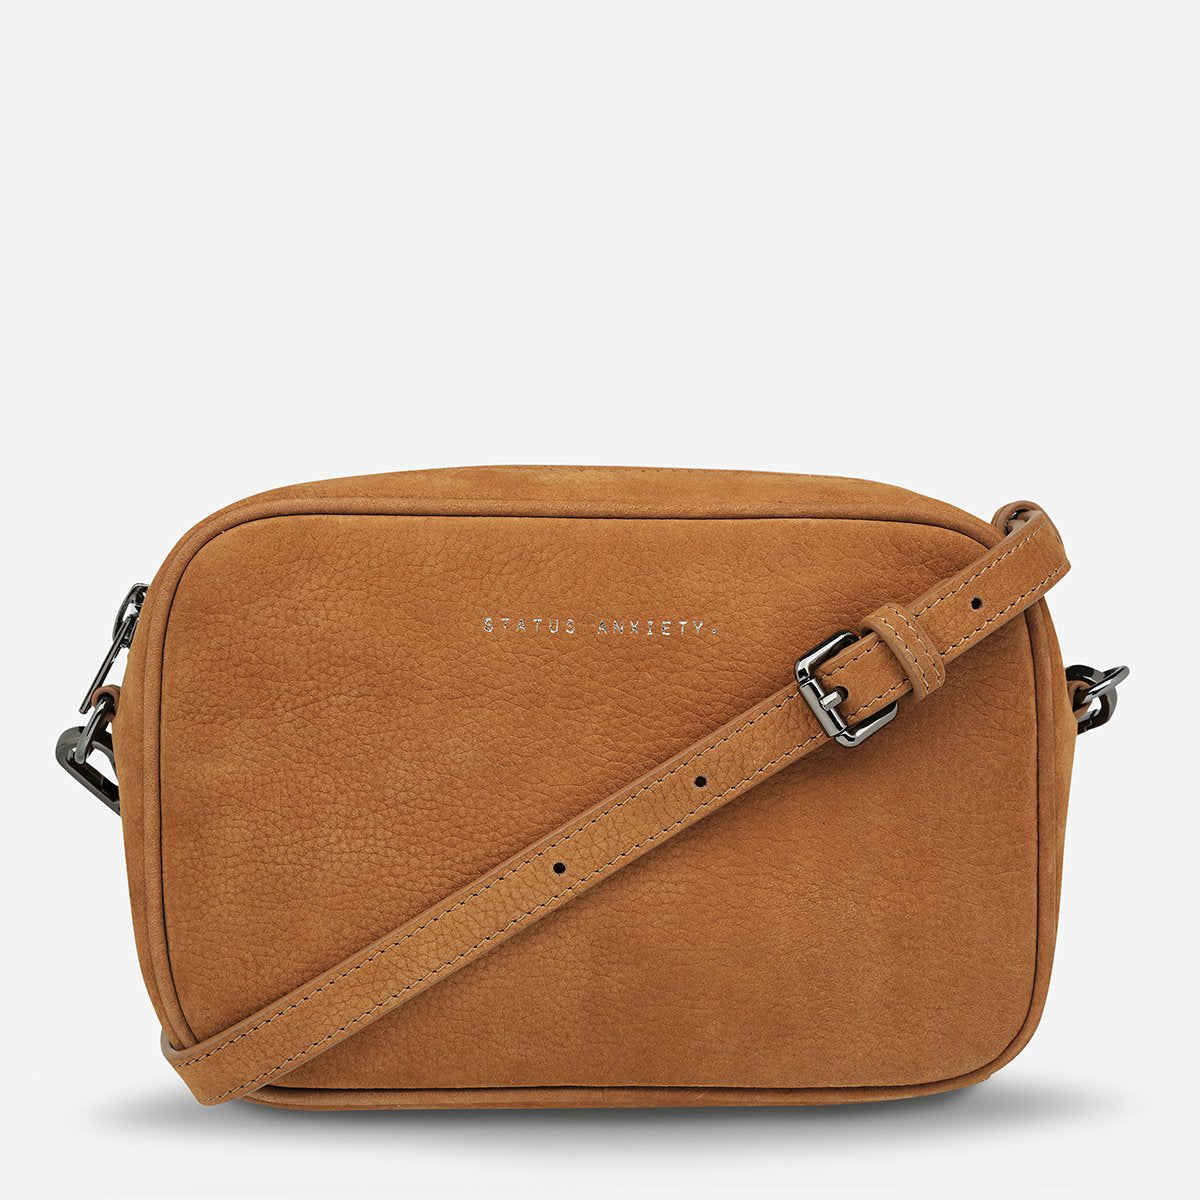 Plunder Bag - Tan Nubuck